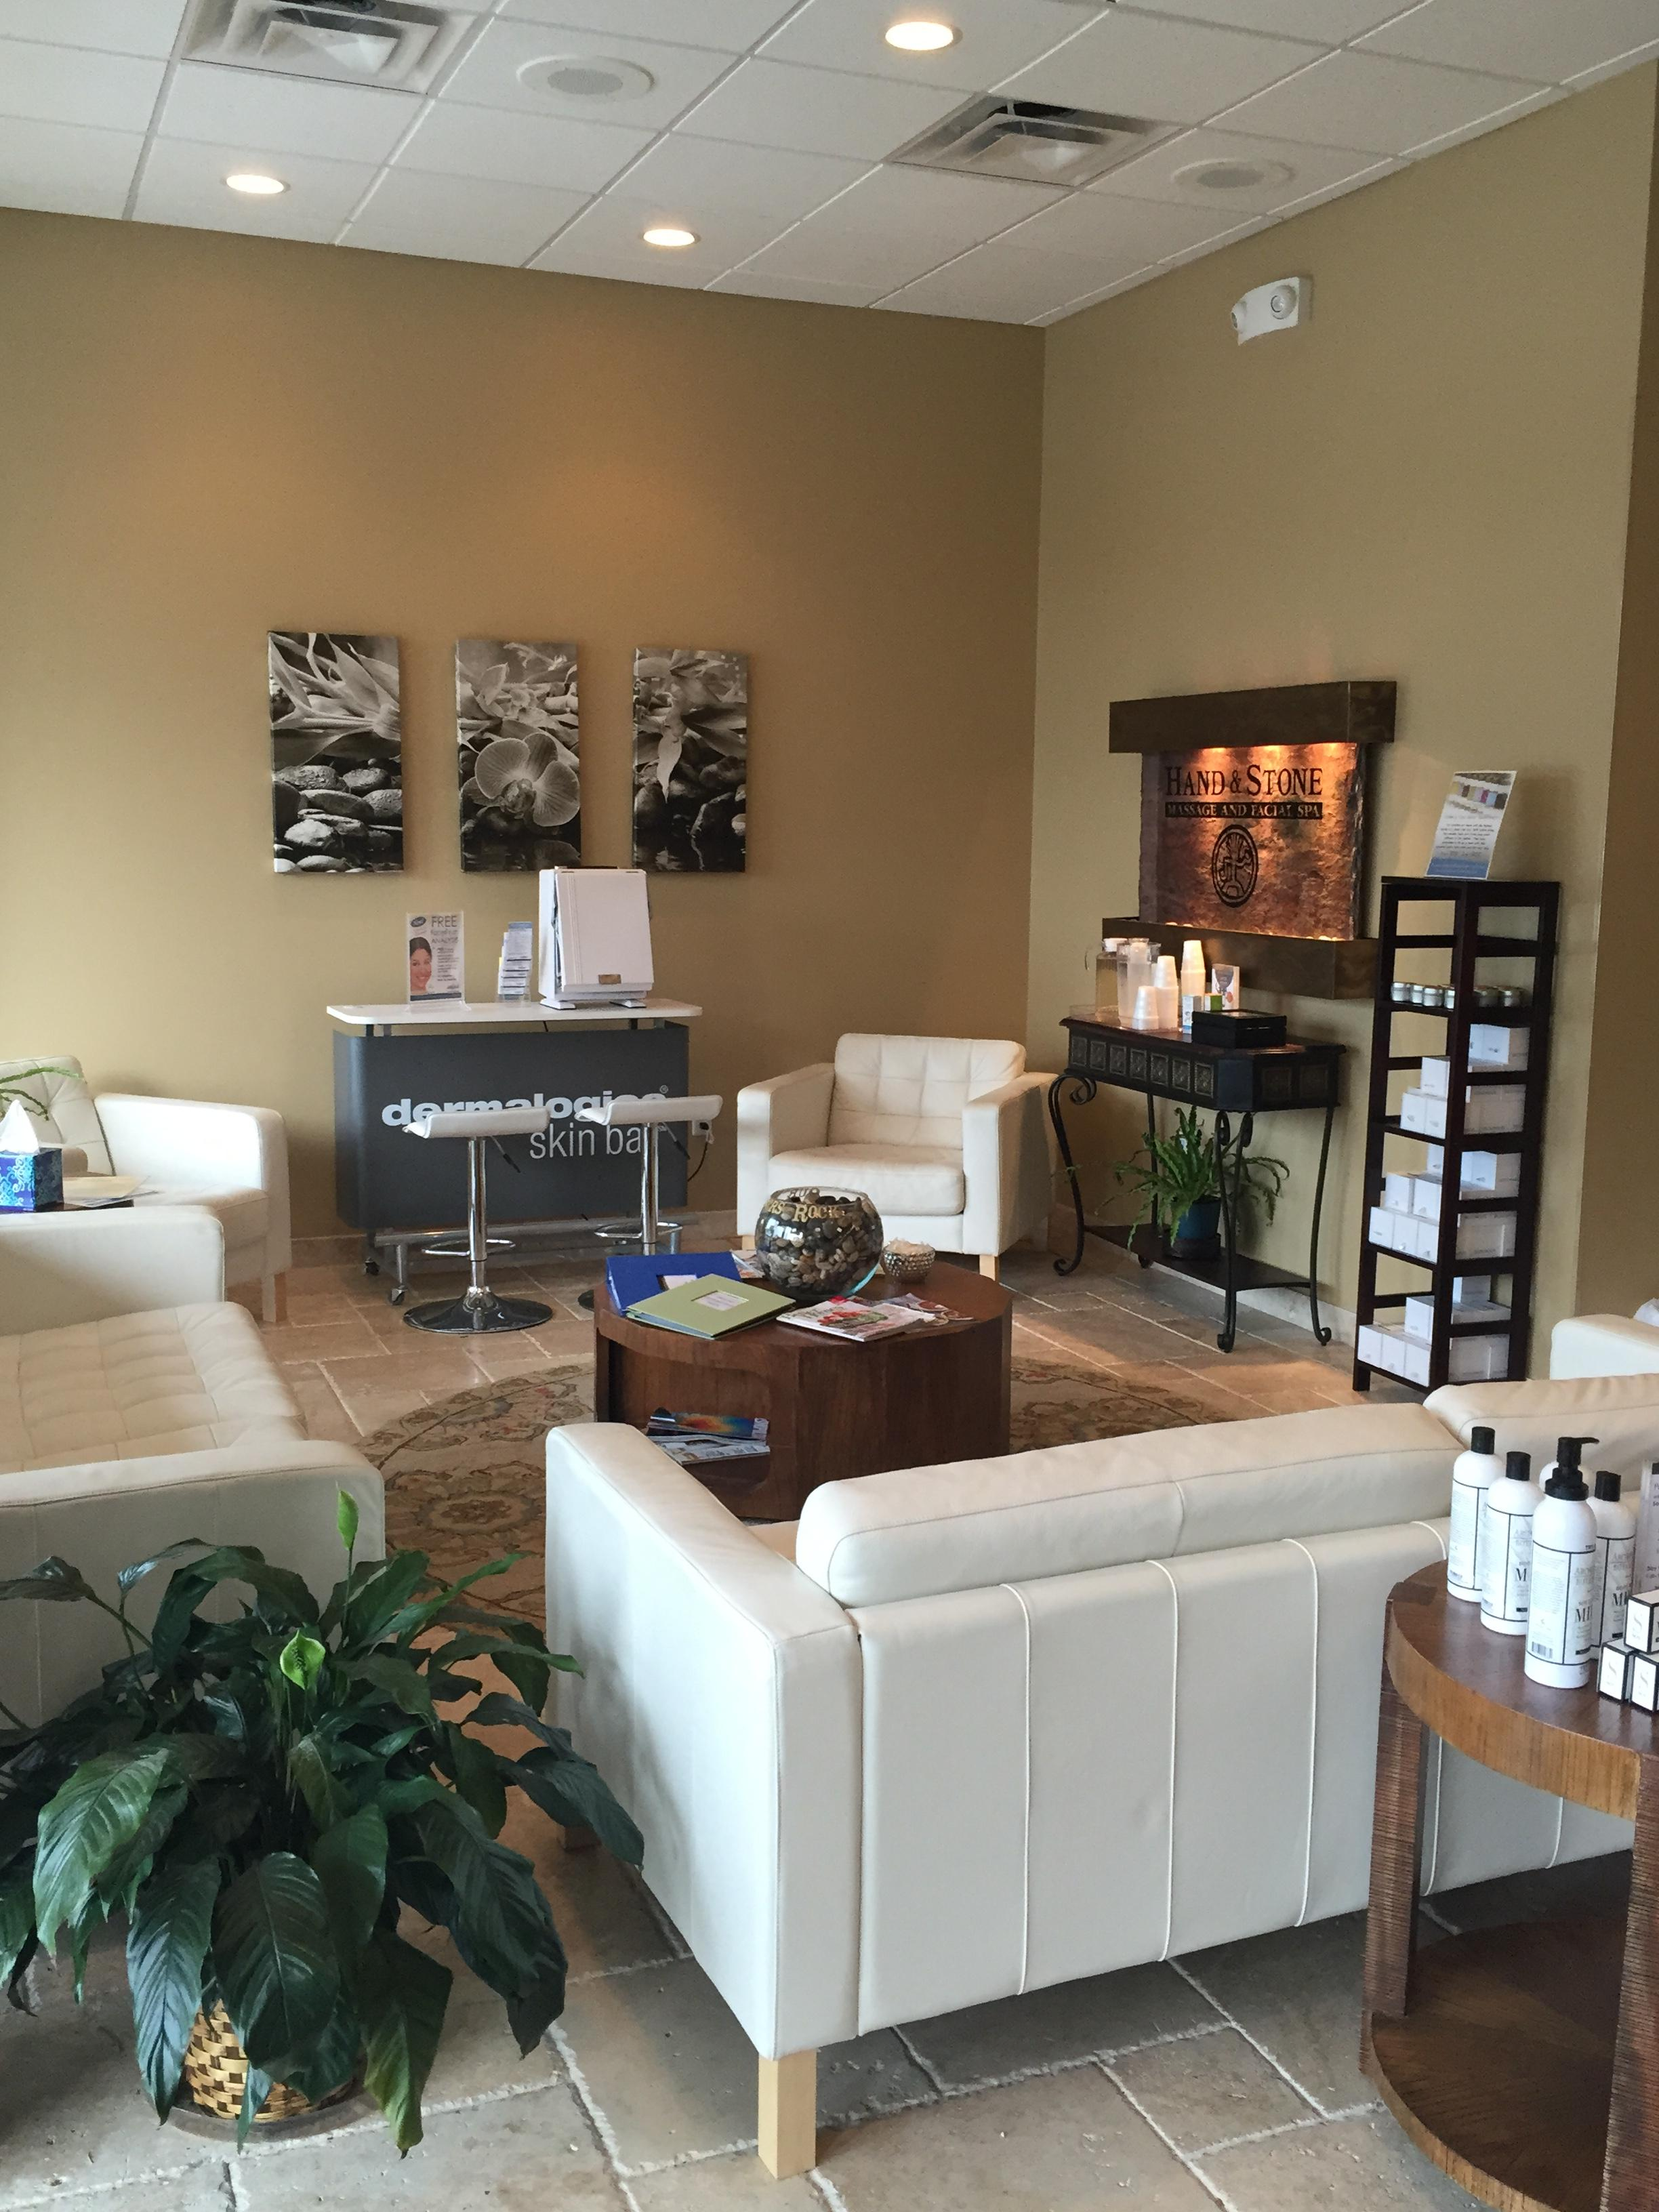 Hand stone massage and facial spa coupons fleming island for Local spas near me